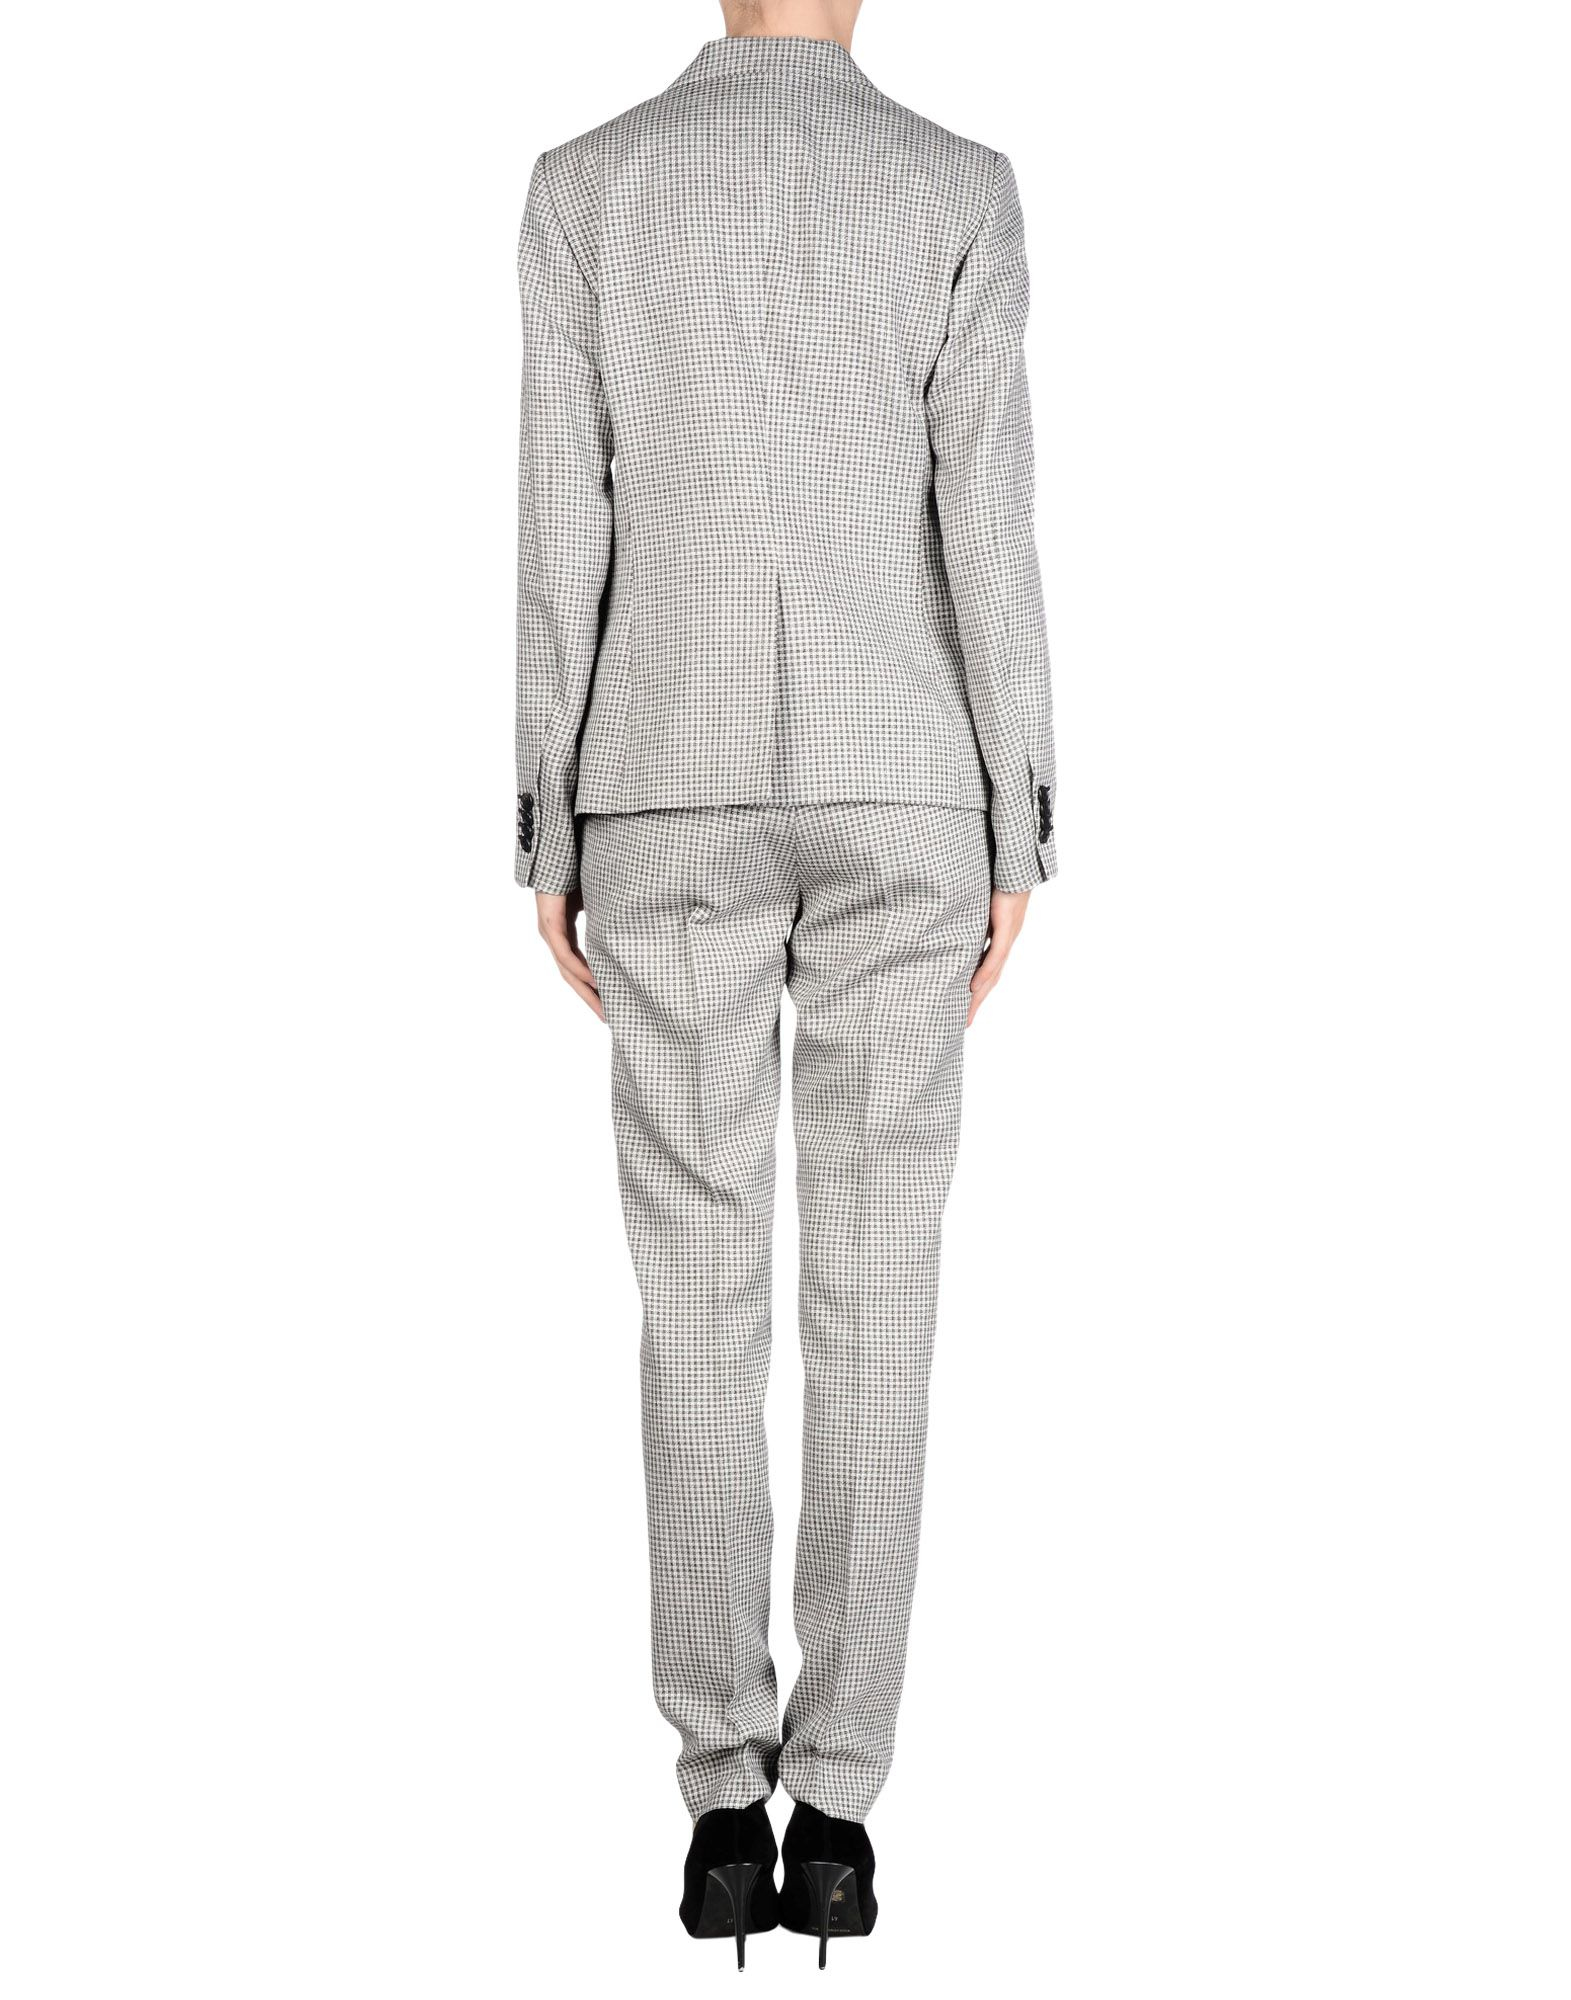 Mauro Grifoni Women S Suit In Gray Lyst